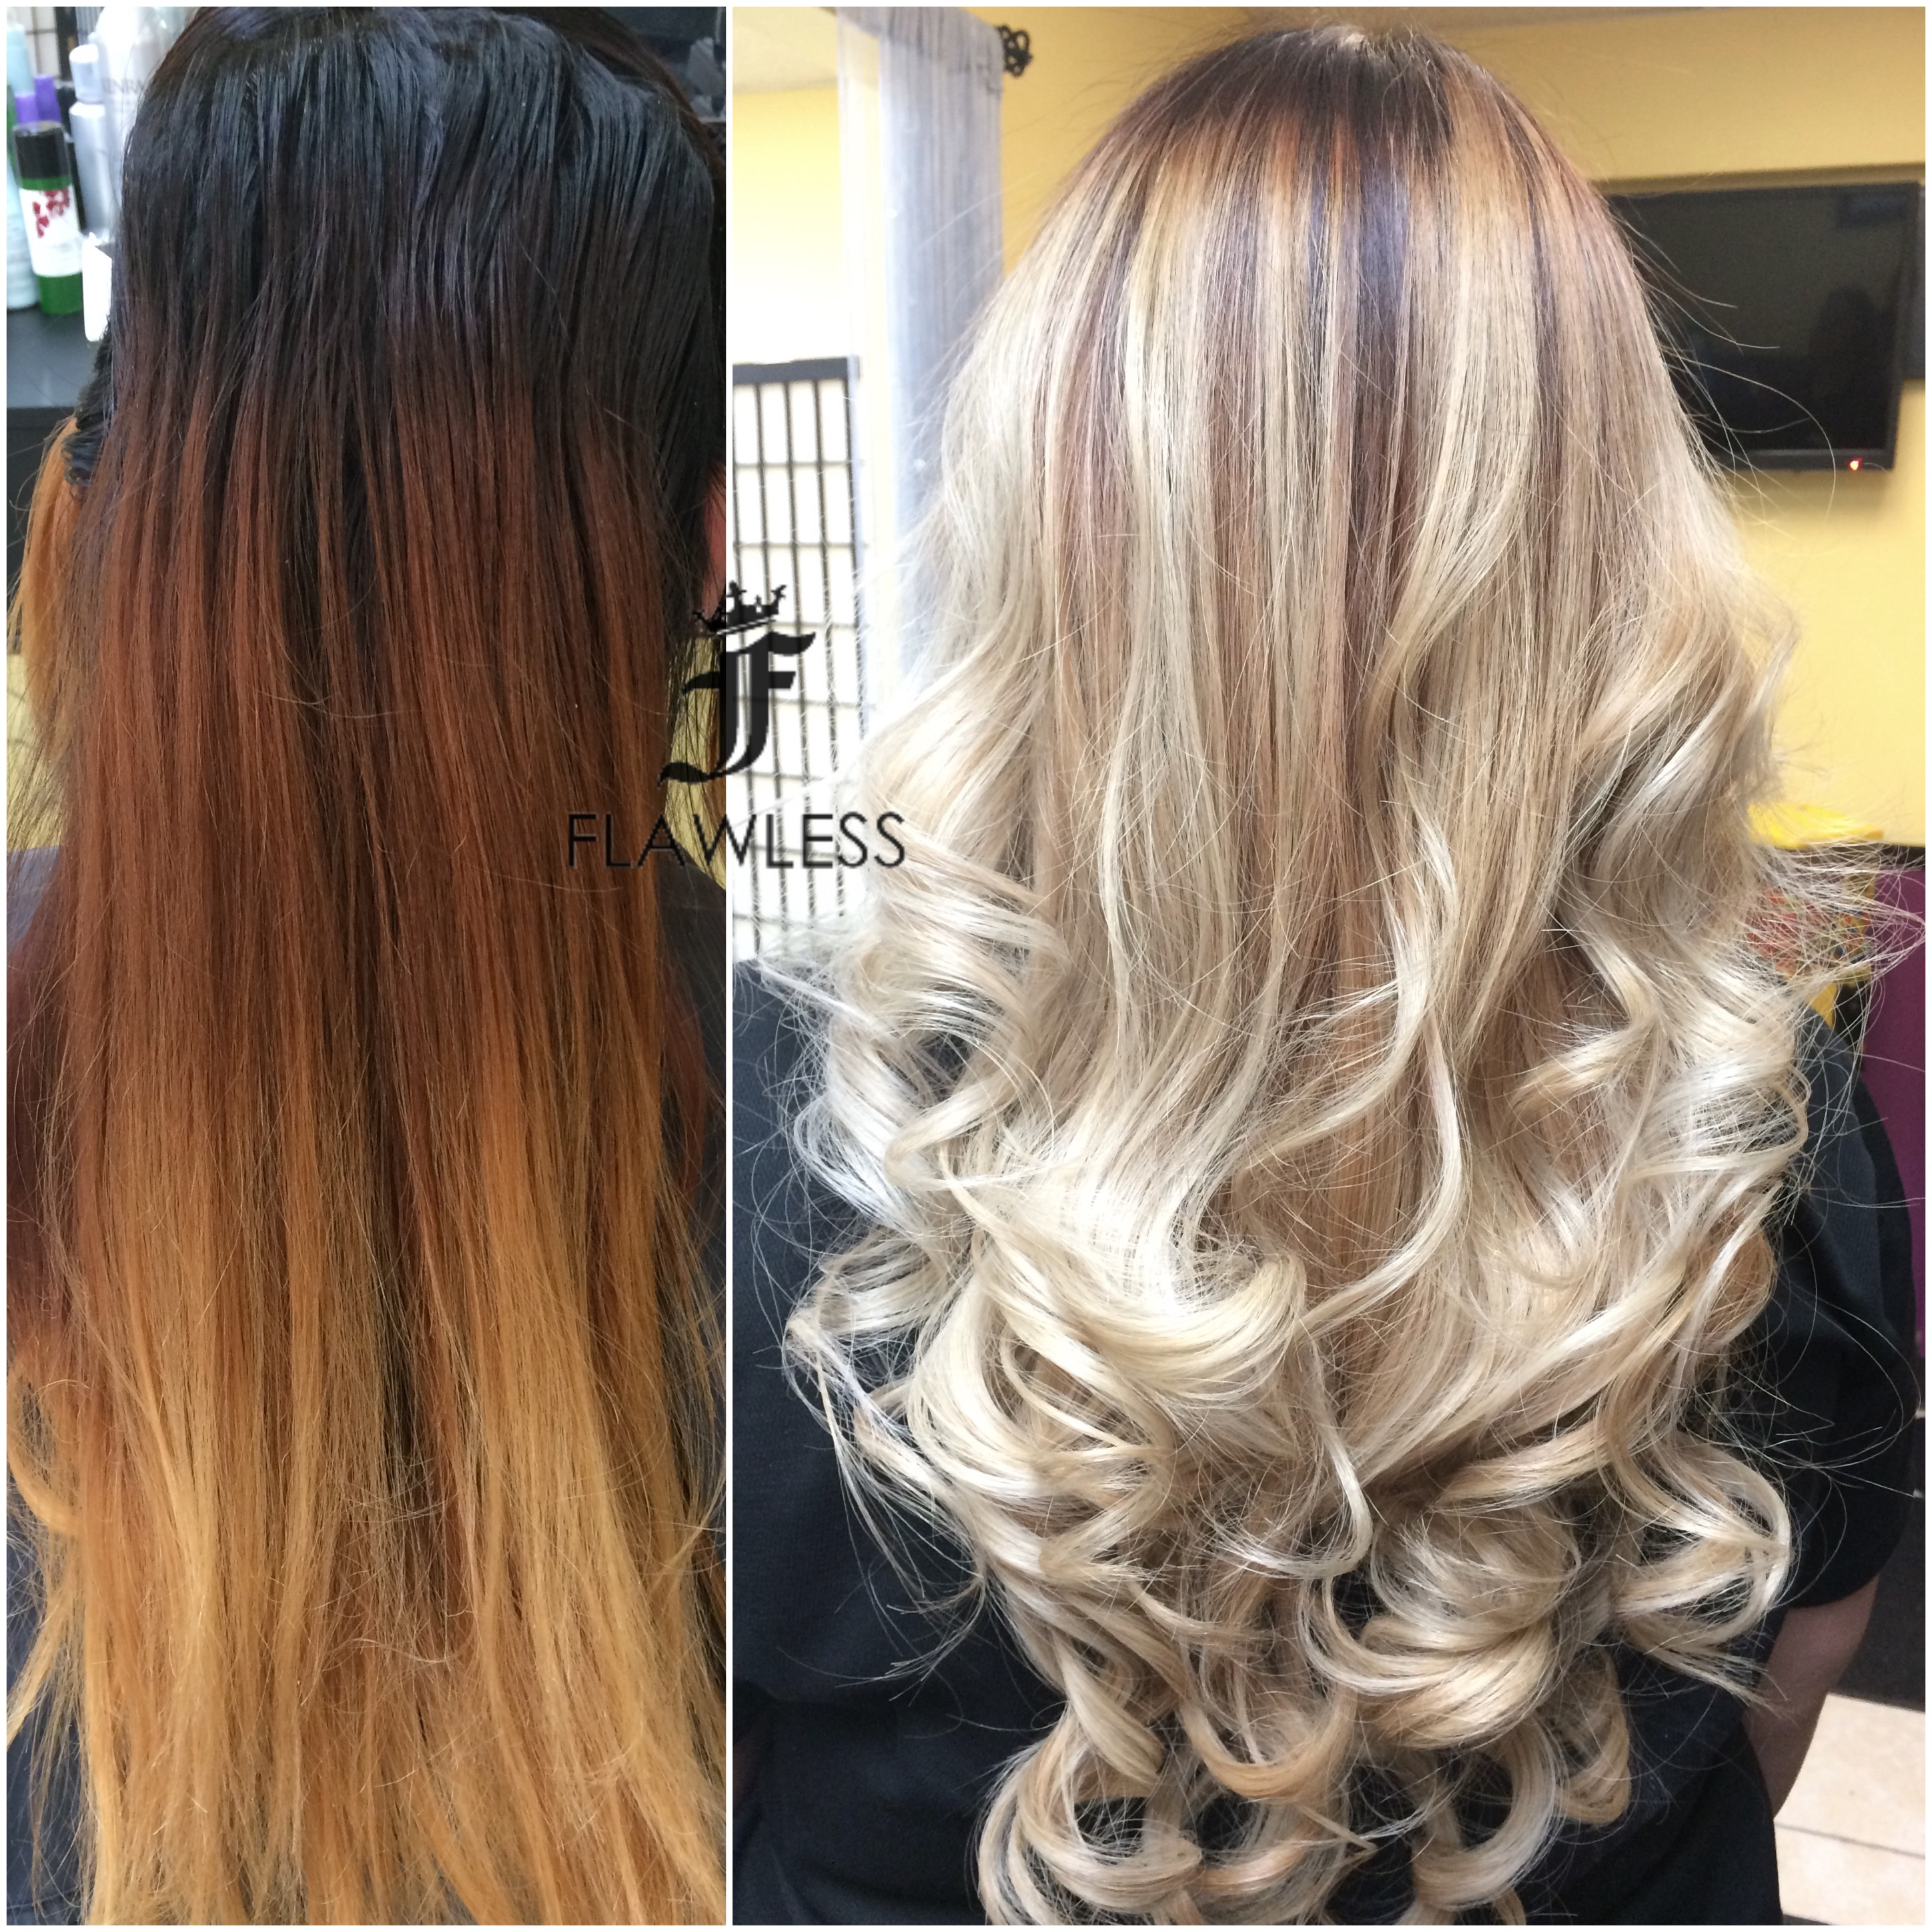 TRANSFORMATION: High Contrast Blonde